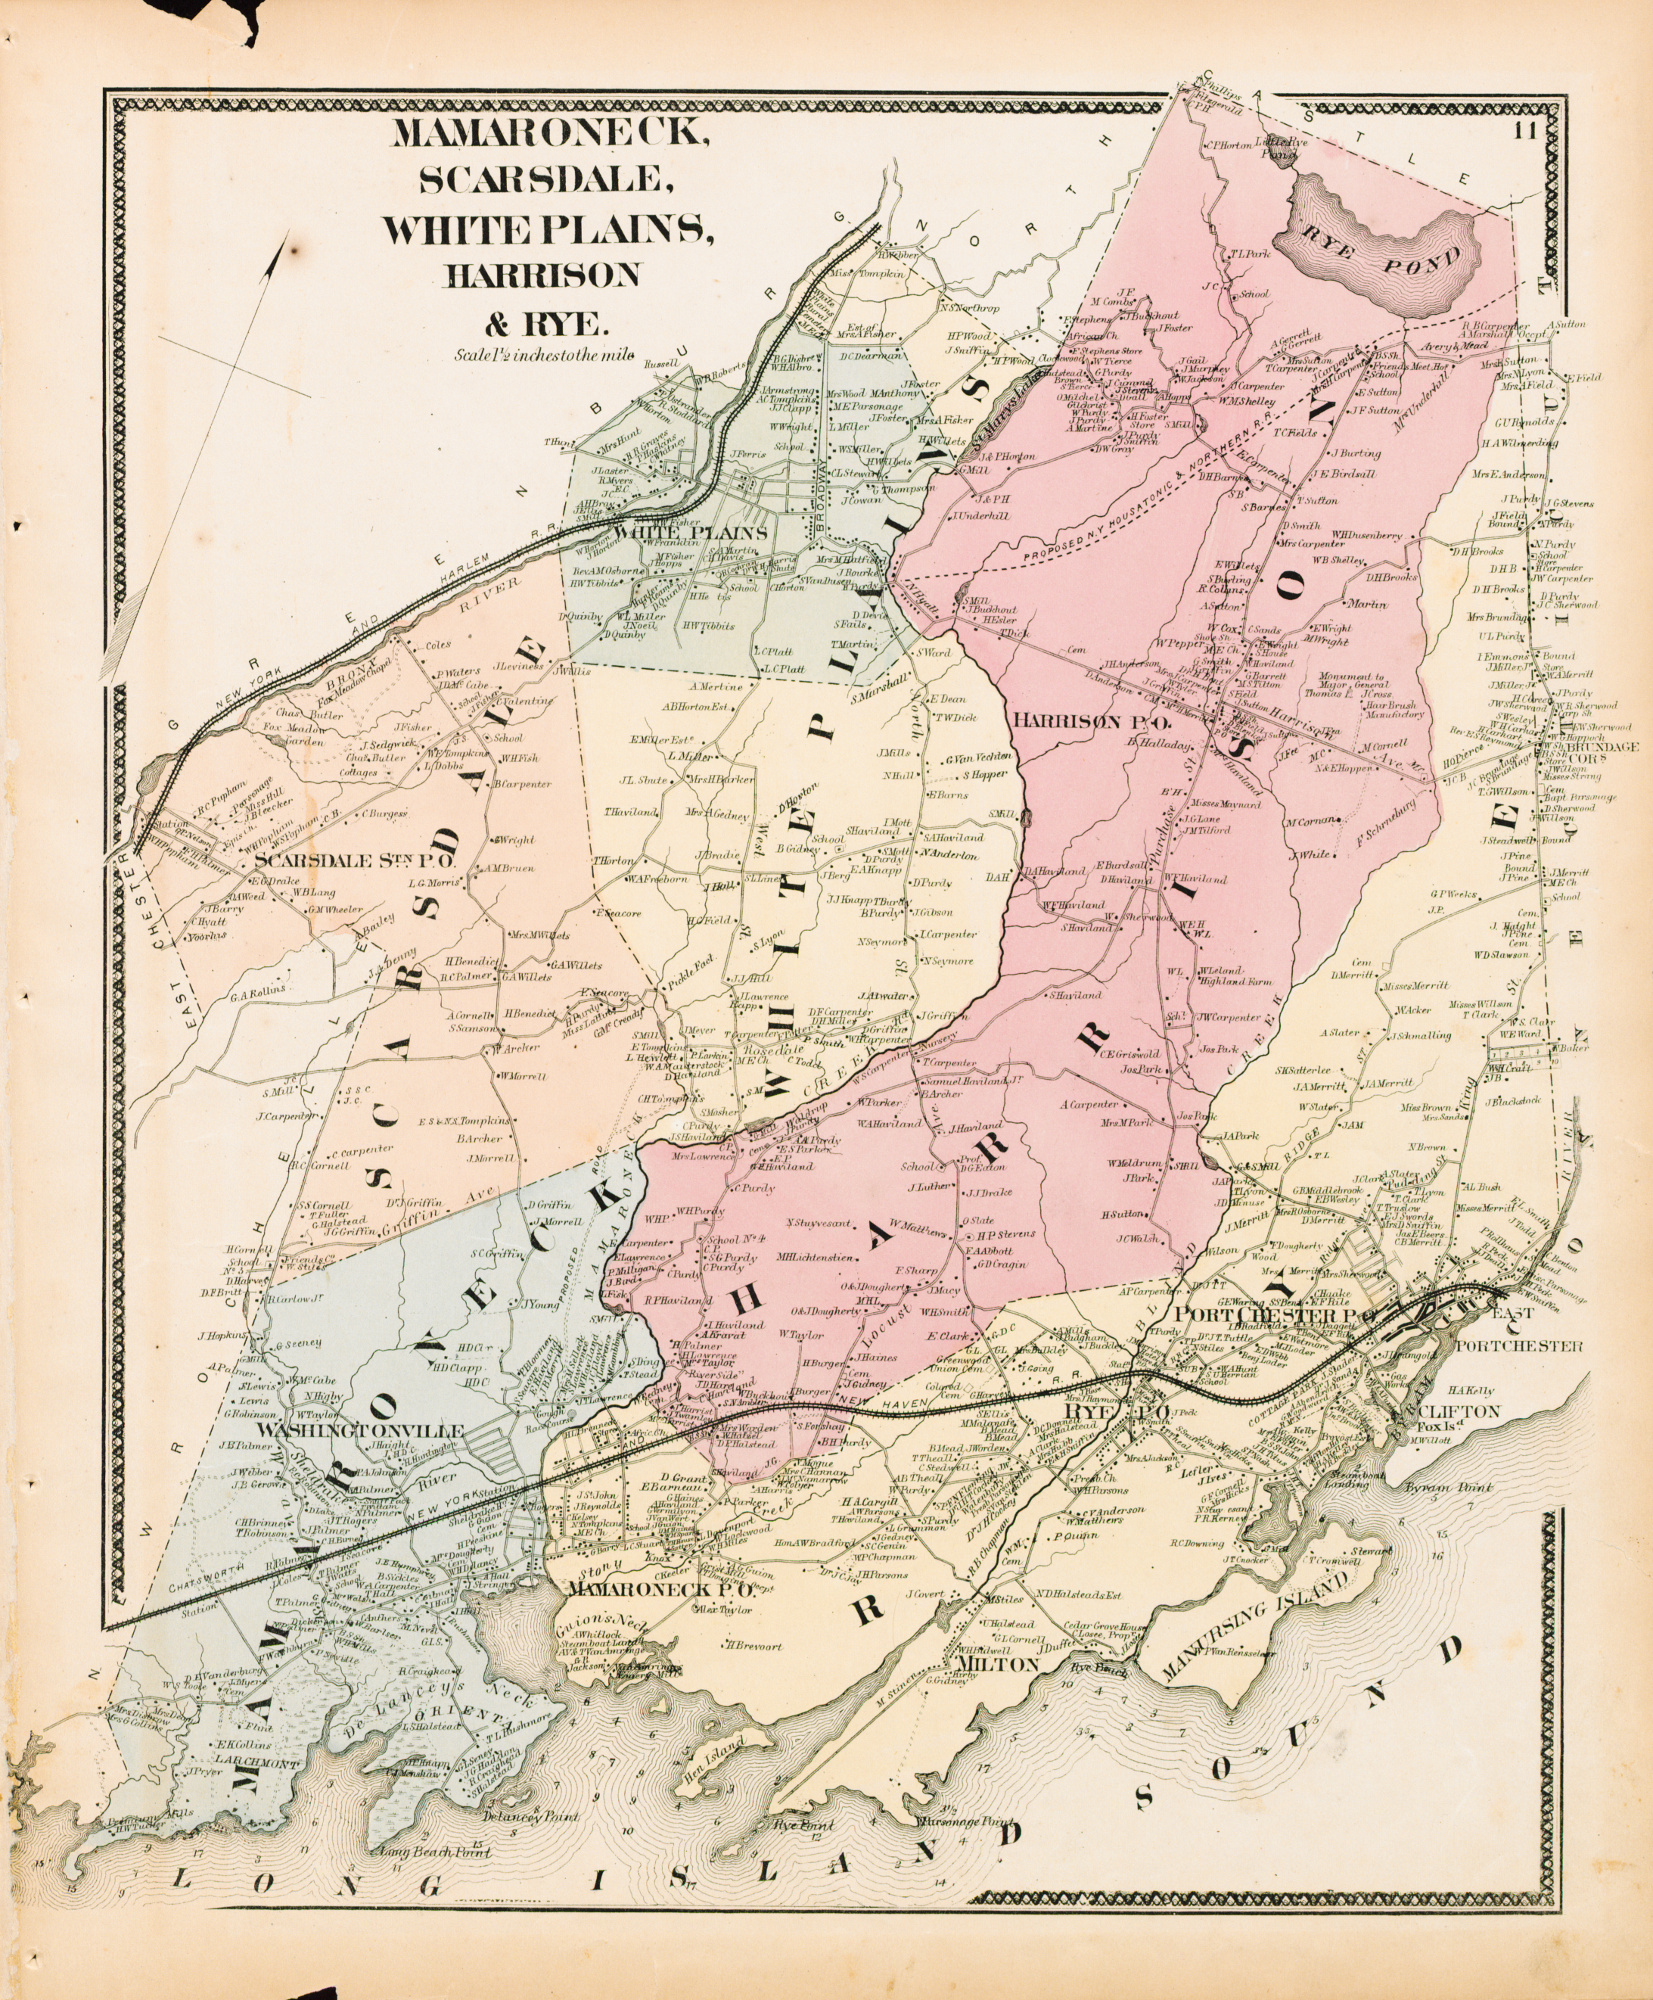 1867 Map of Mamaroneck Scarsdale White Plains Harrison and Rye